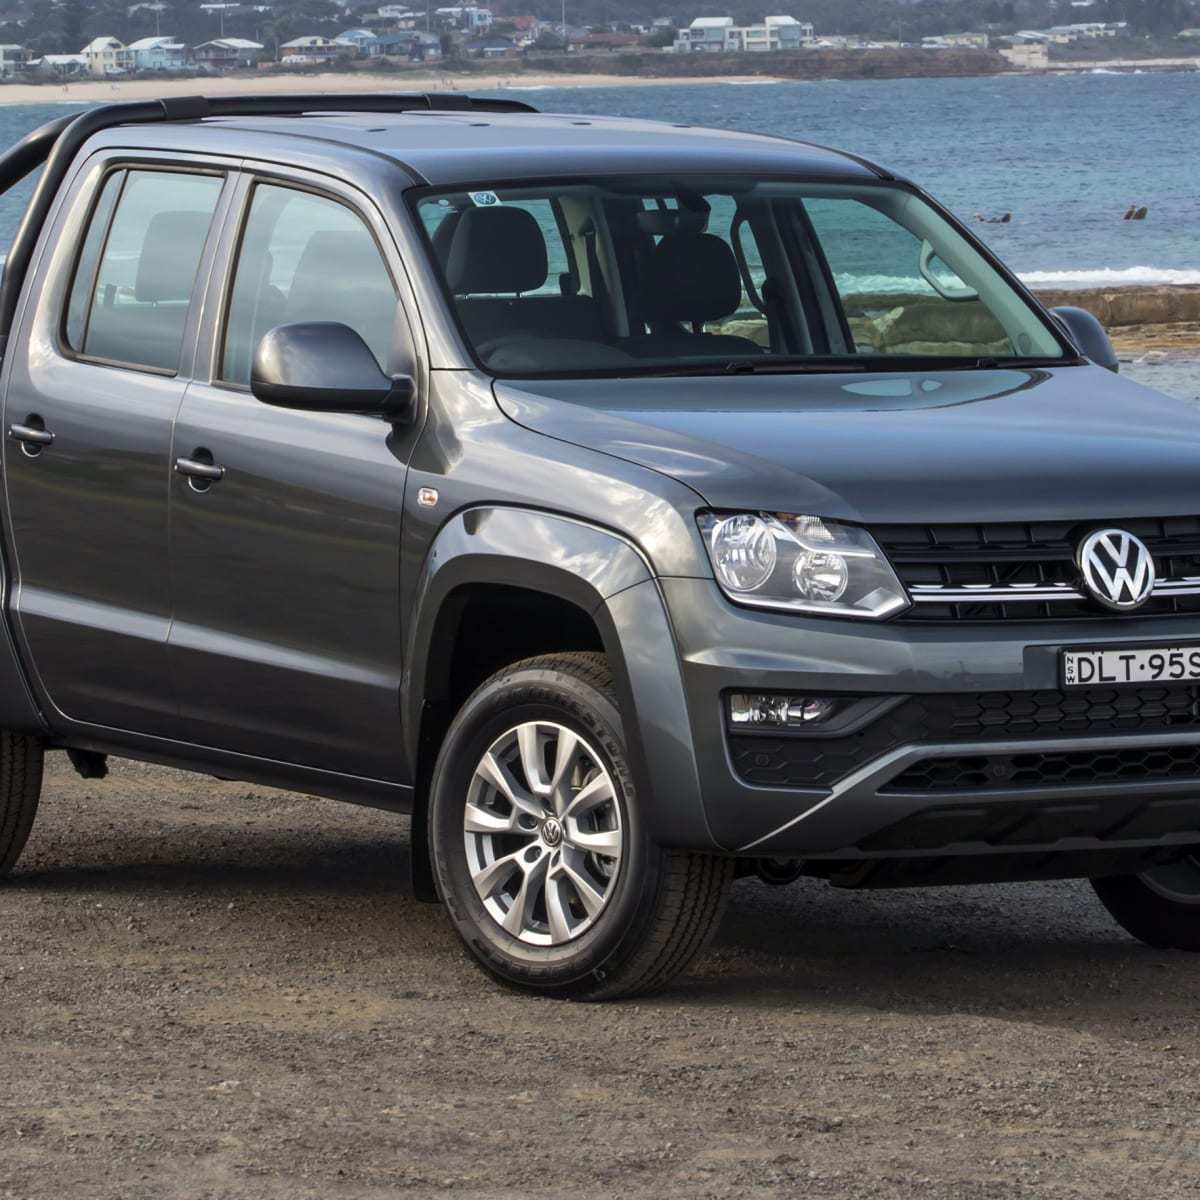 71 A 2019 VW Amarok Wallpaper